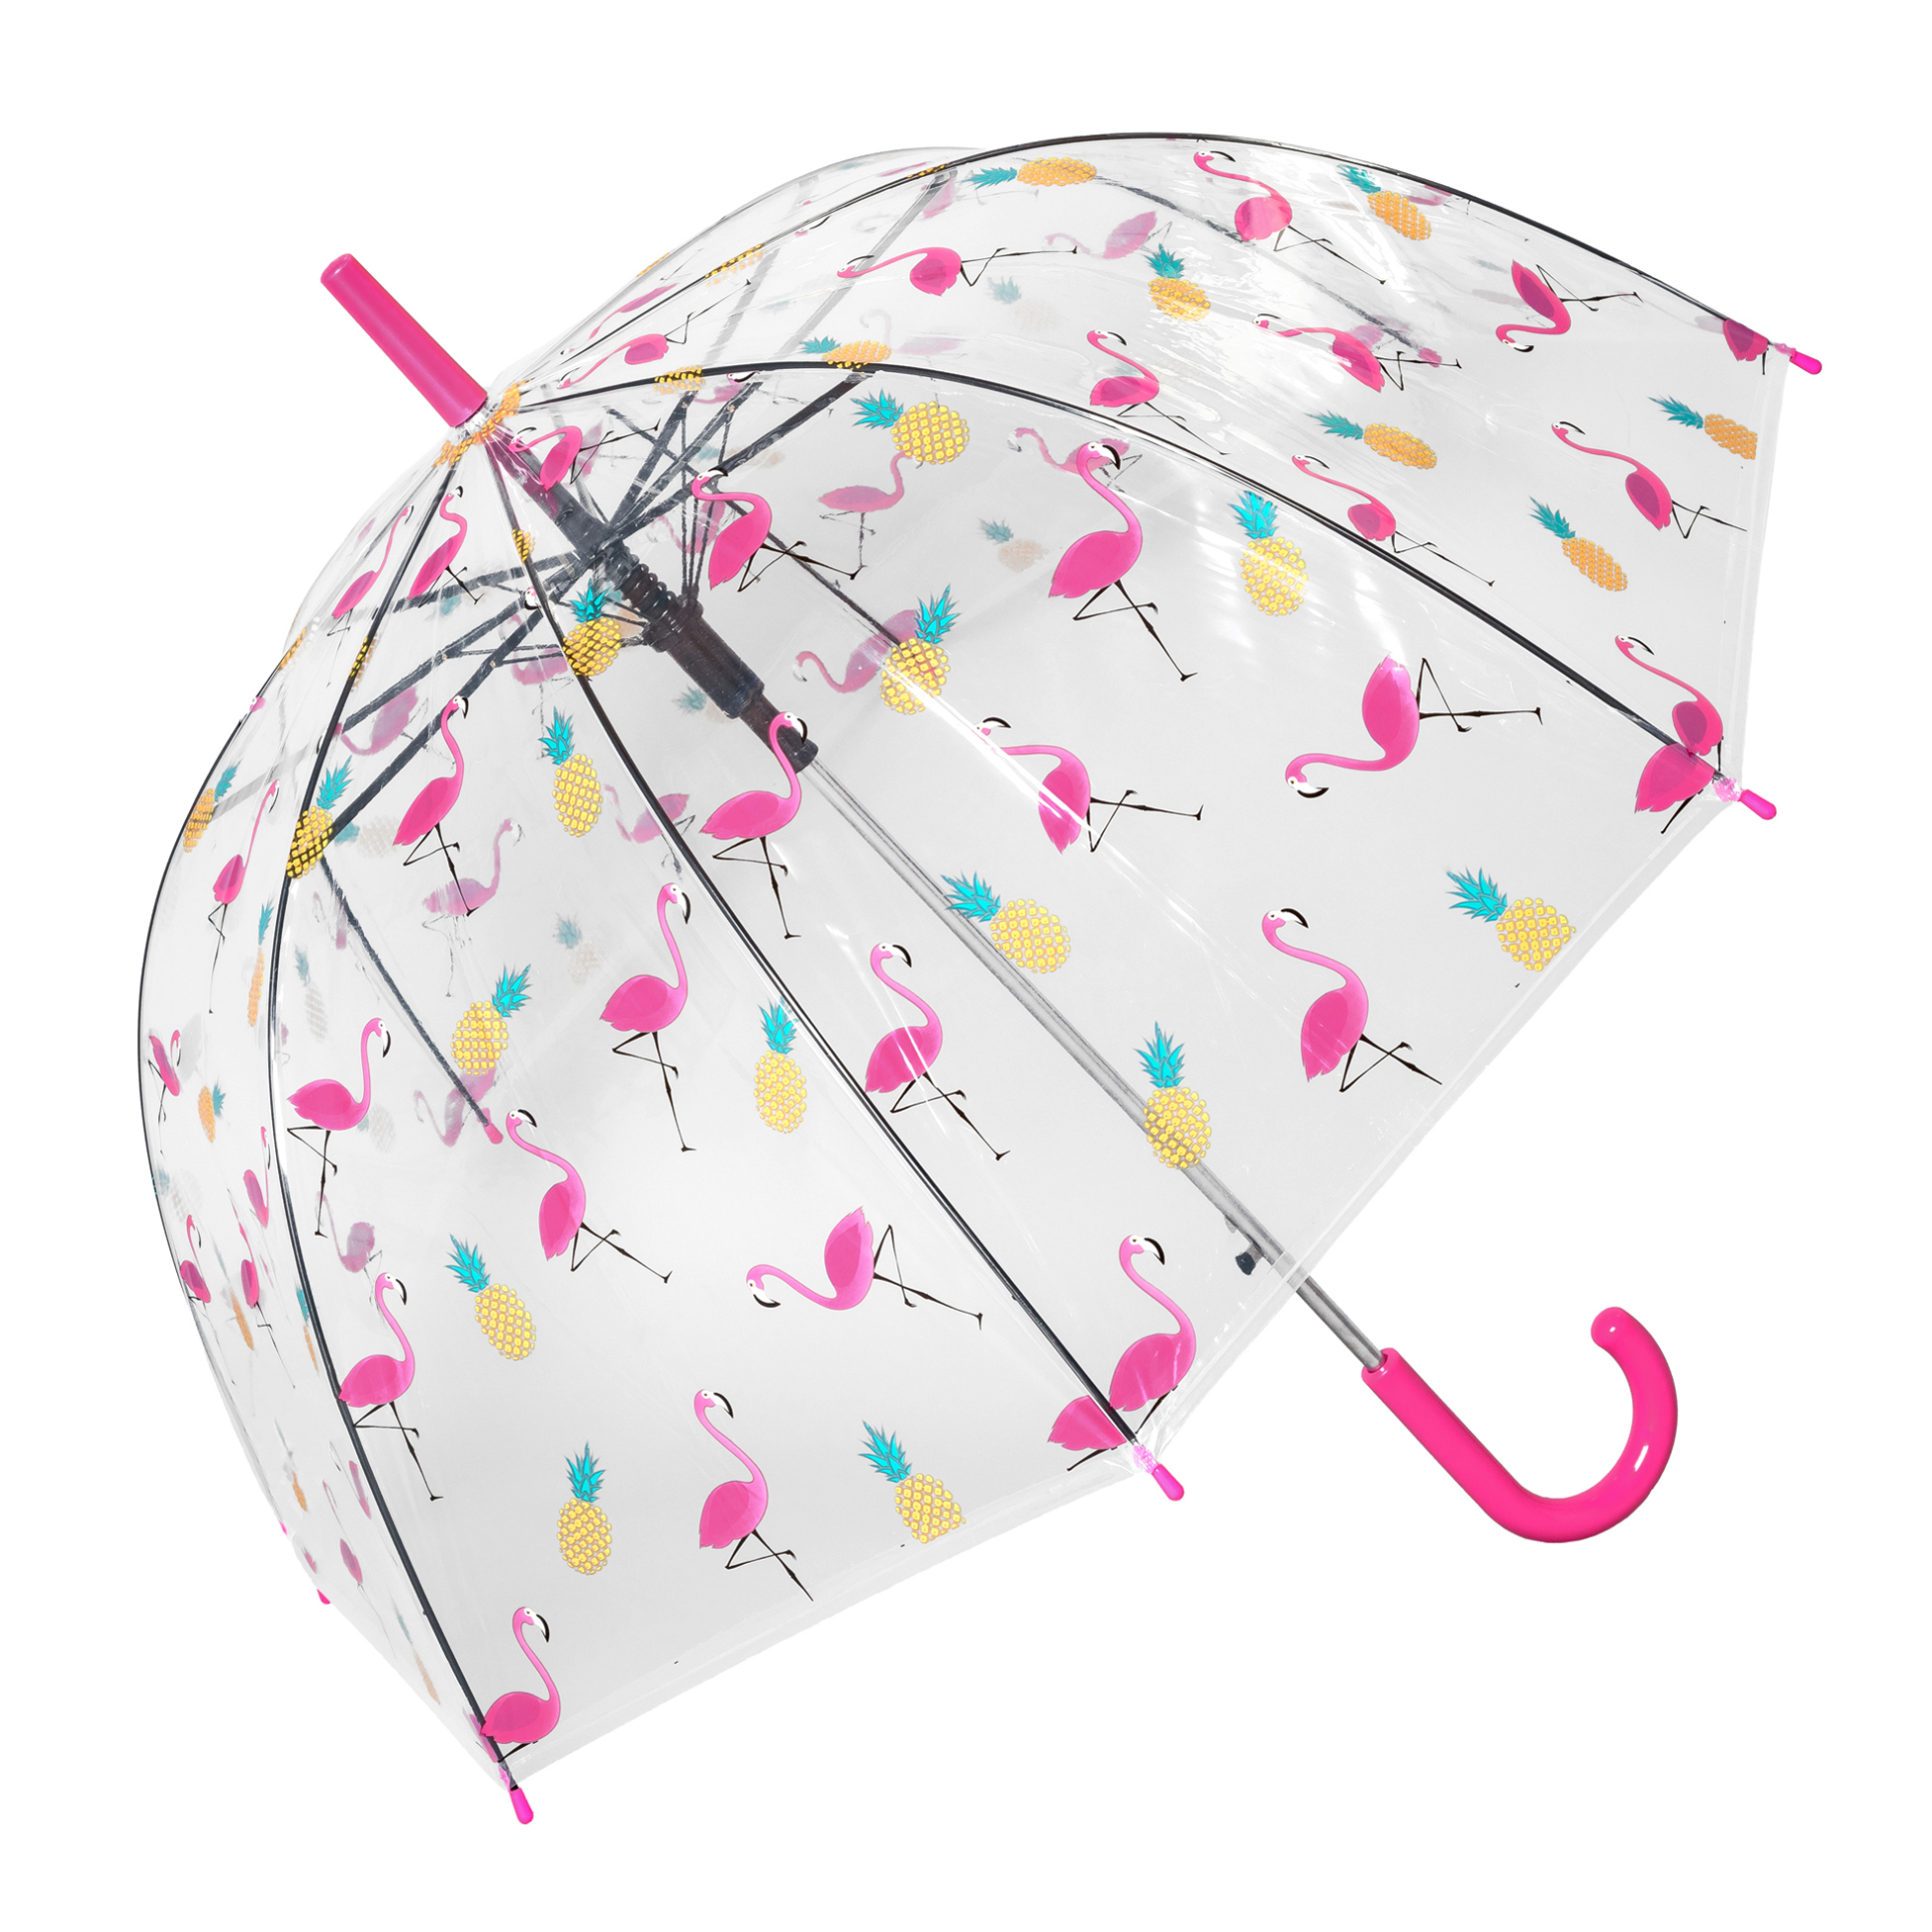 Flamingo and Pineapple Clear Umbrella (17021-F)